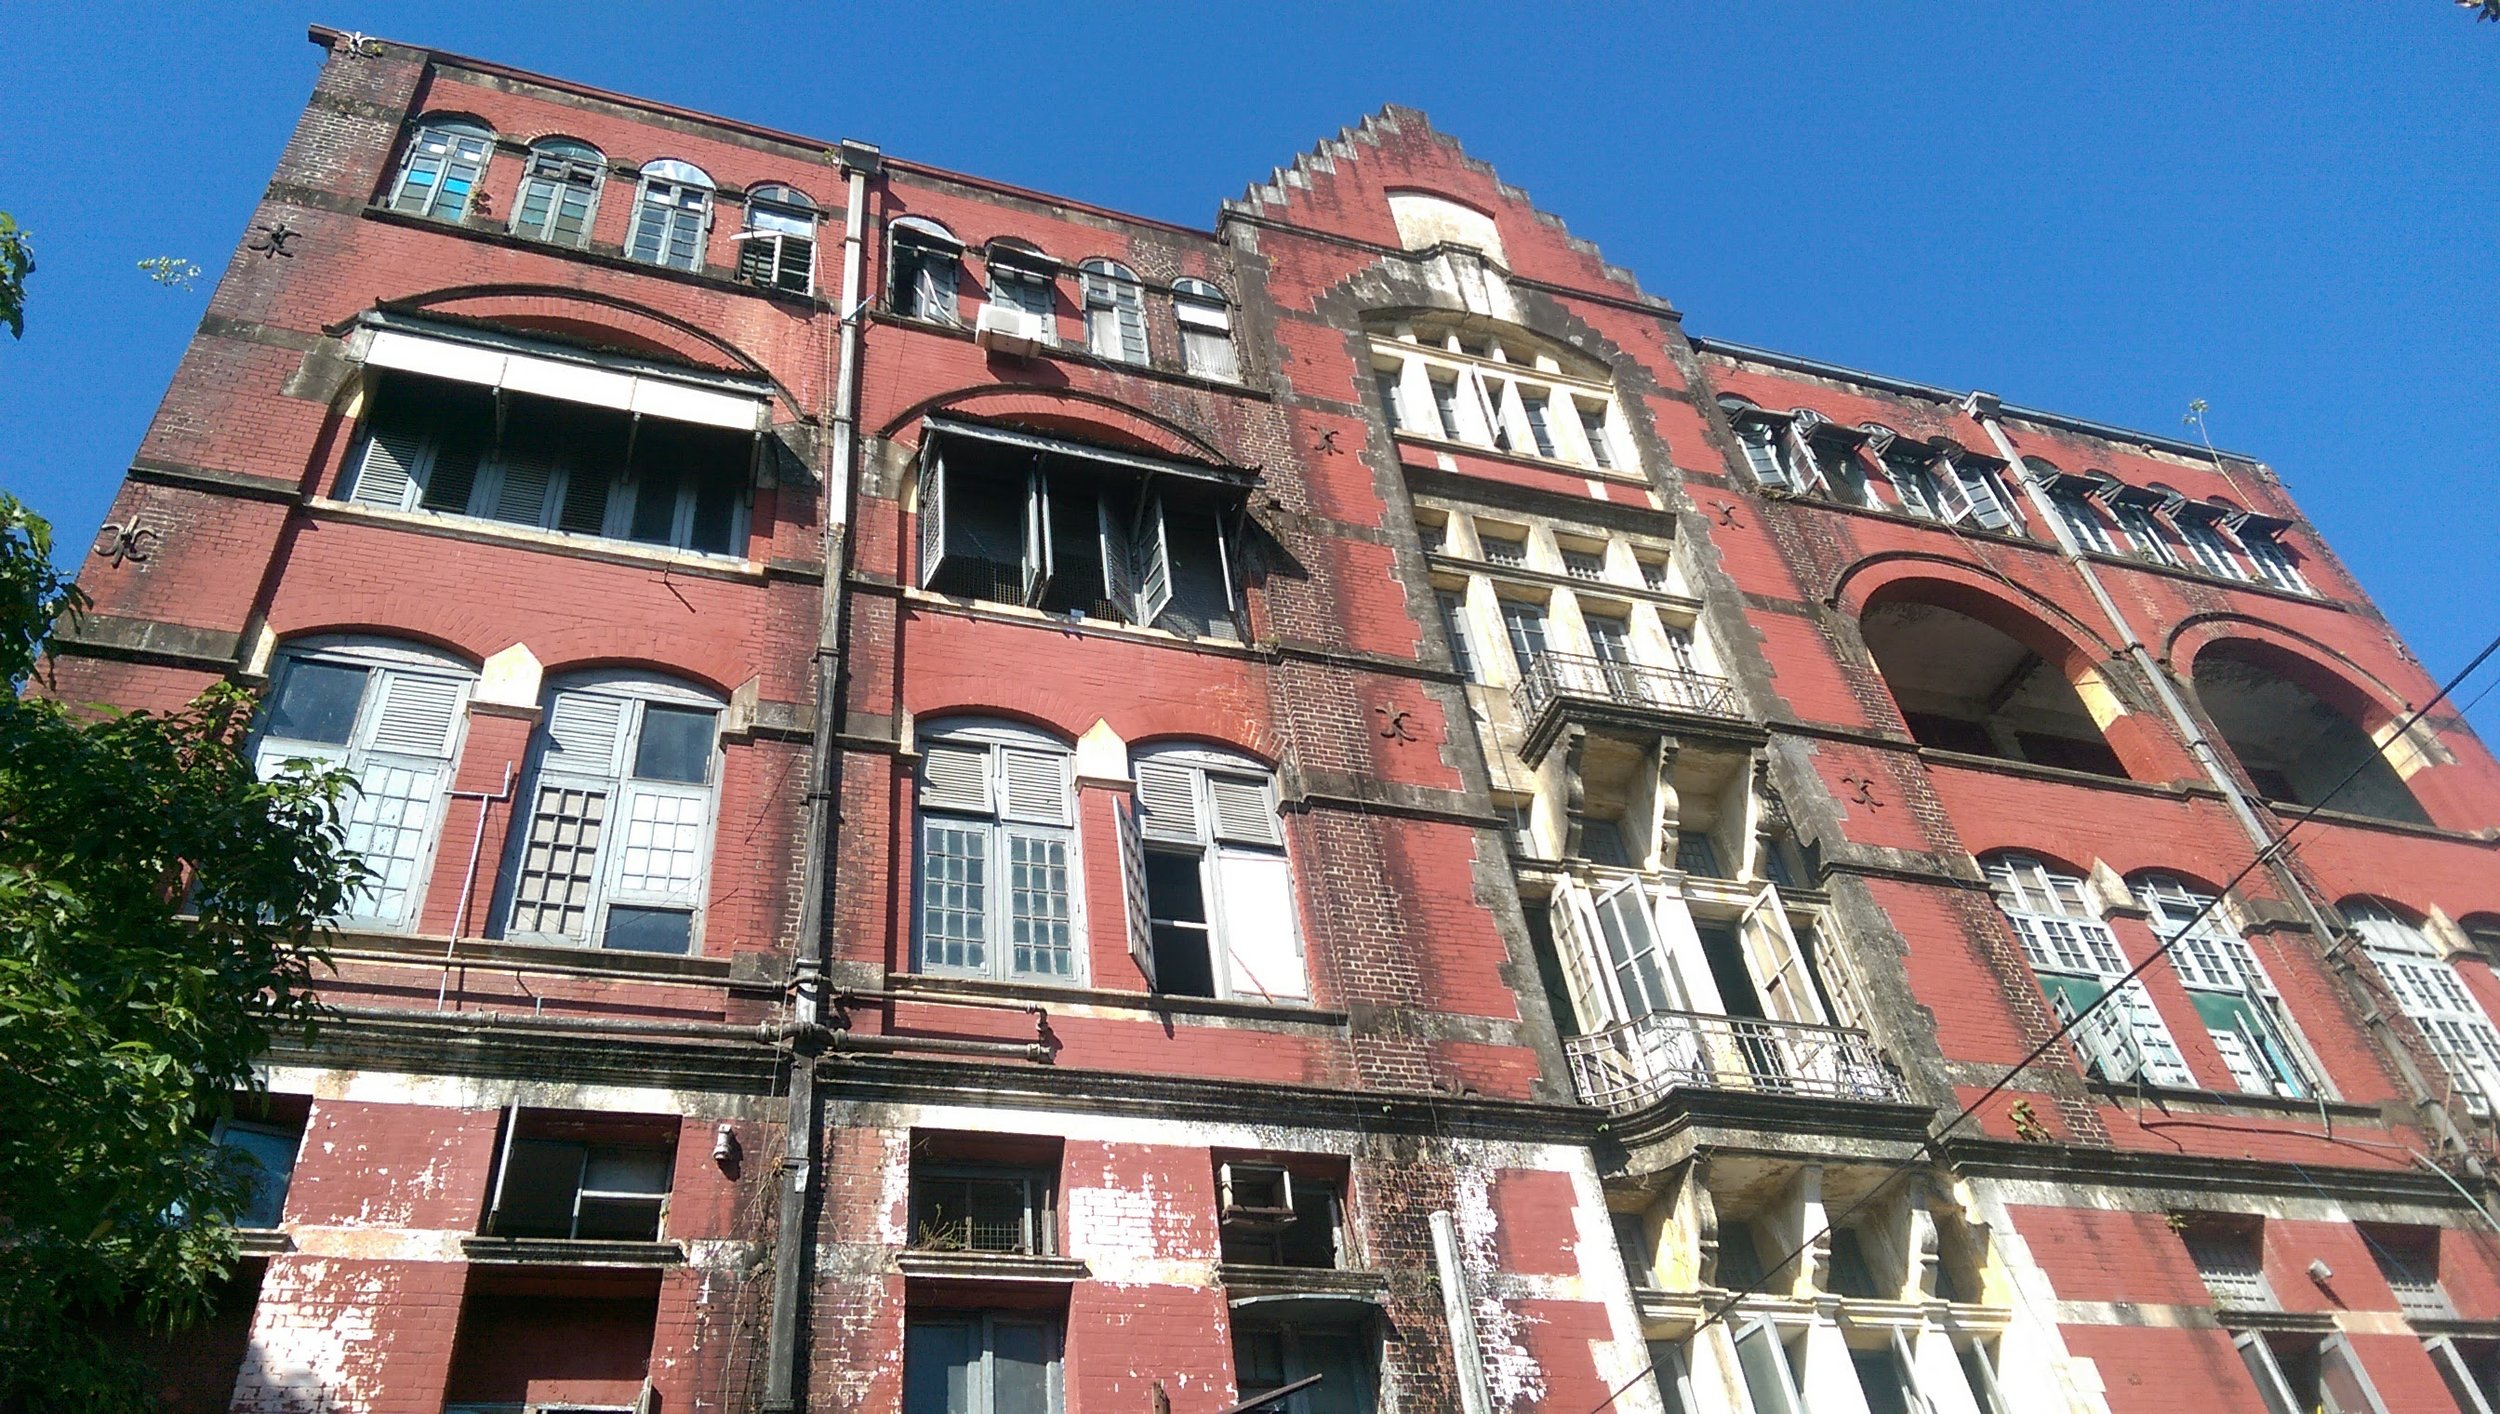 Secret police building, still in use, Yangon, Myanmar.  Photo: me and my cell phone.  Don't turn me in.